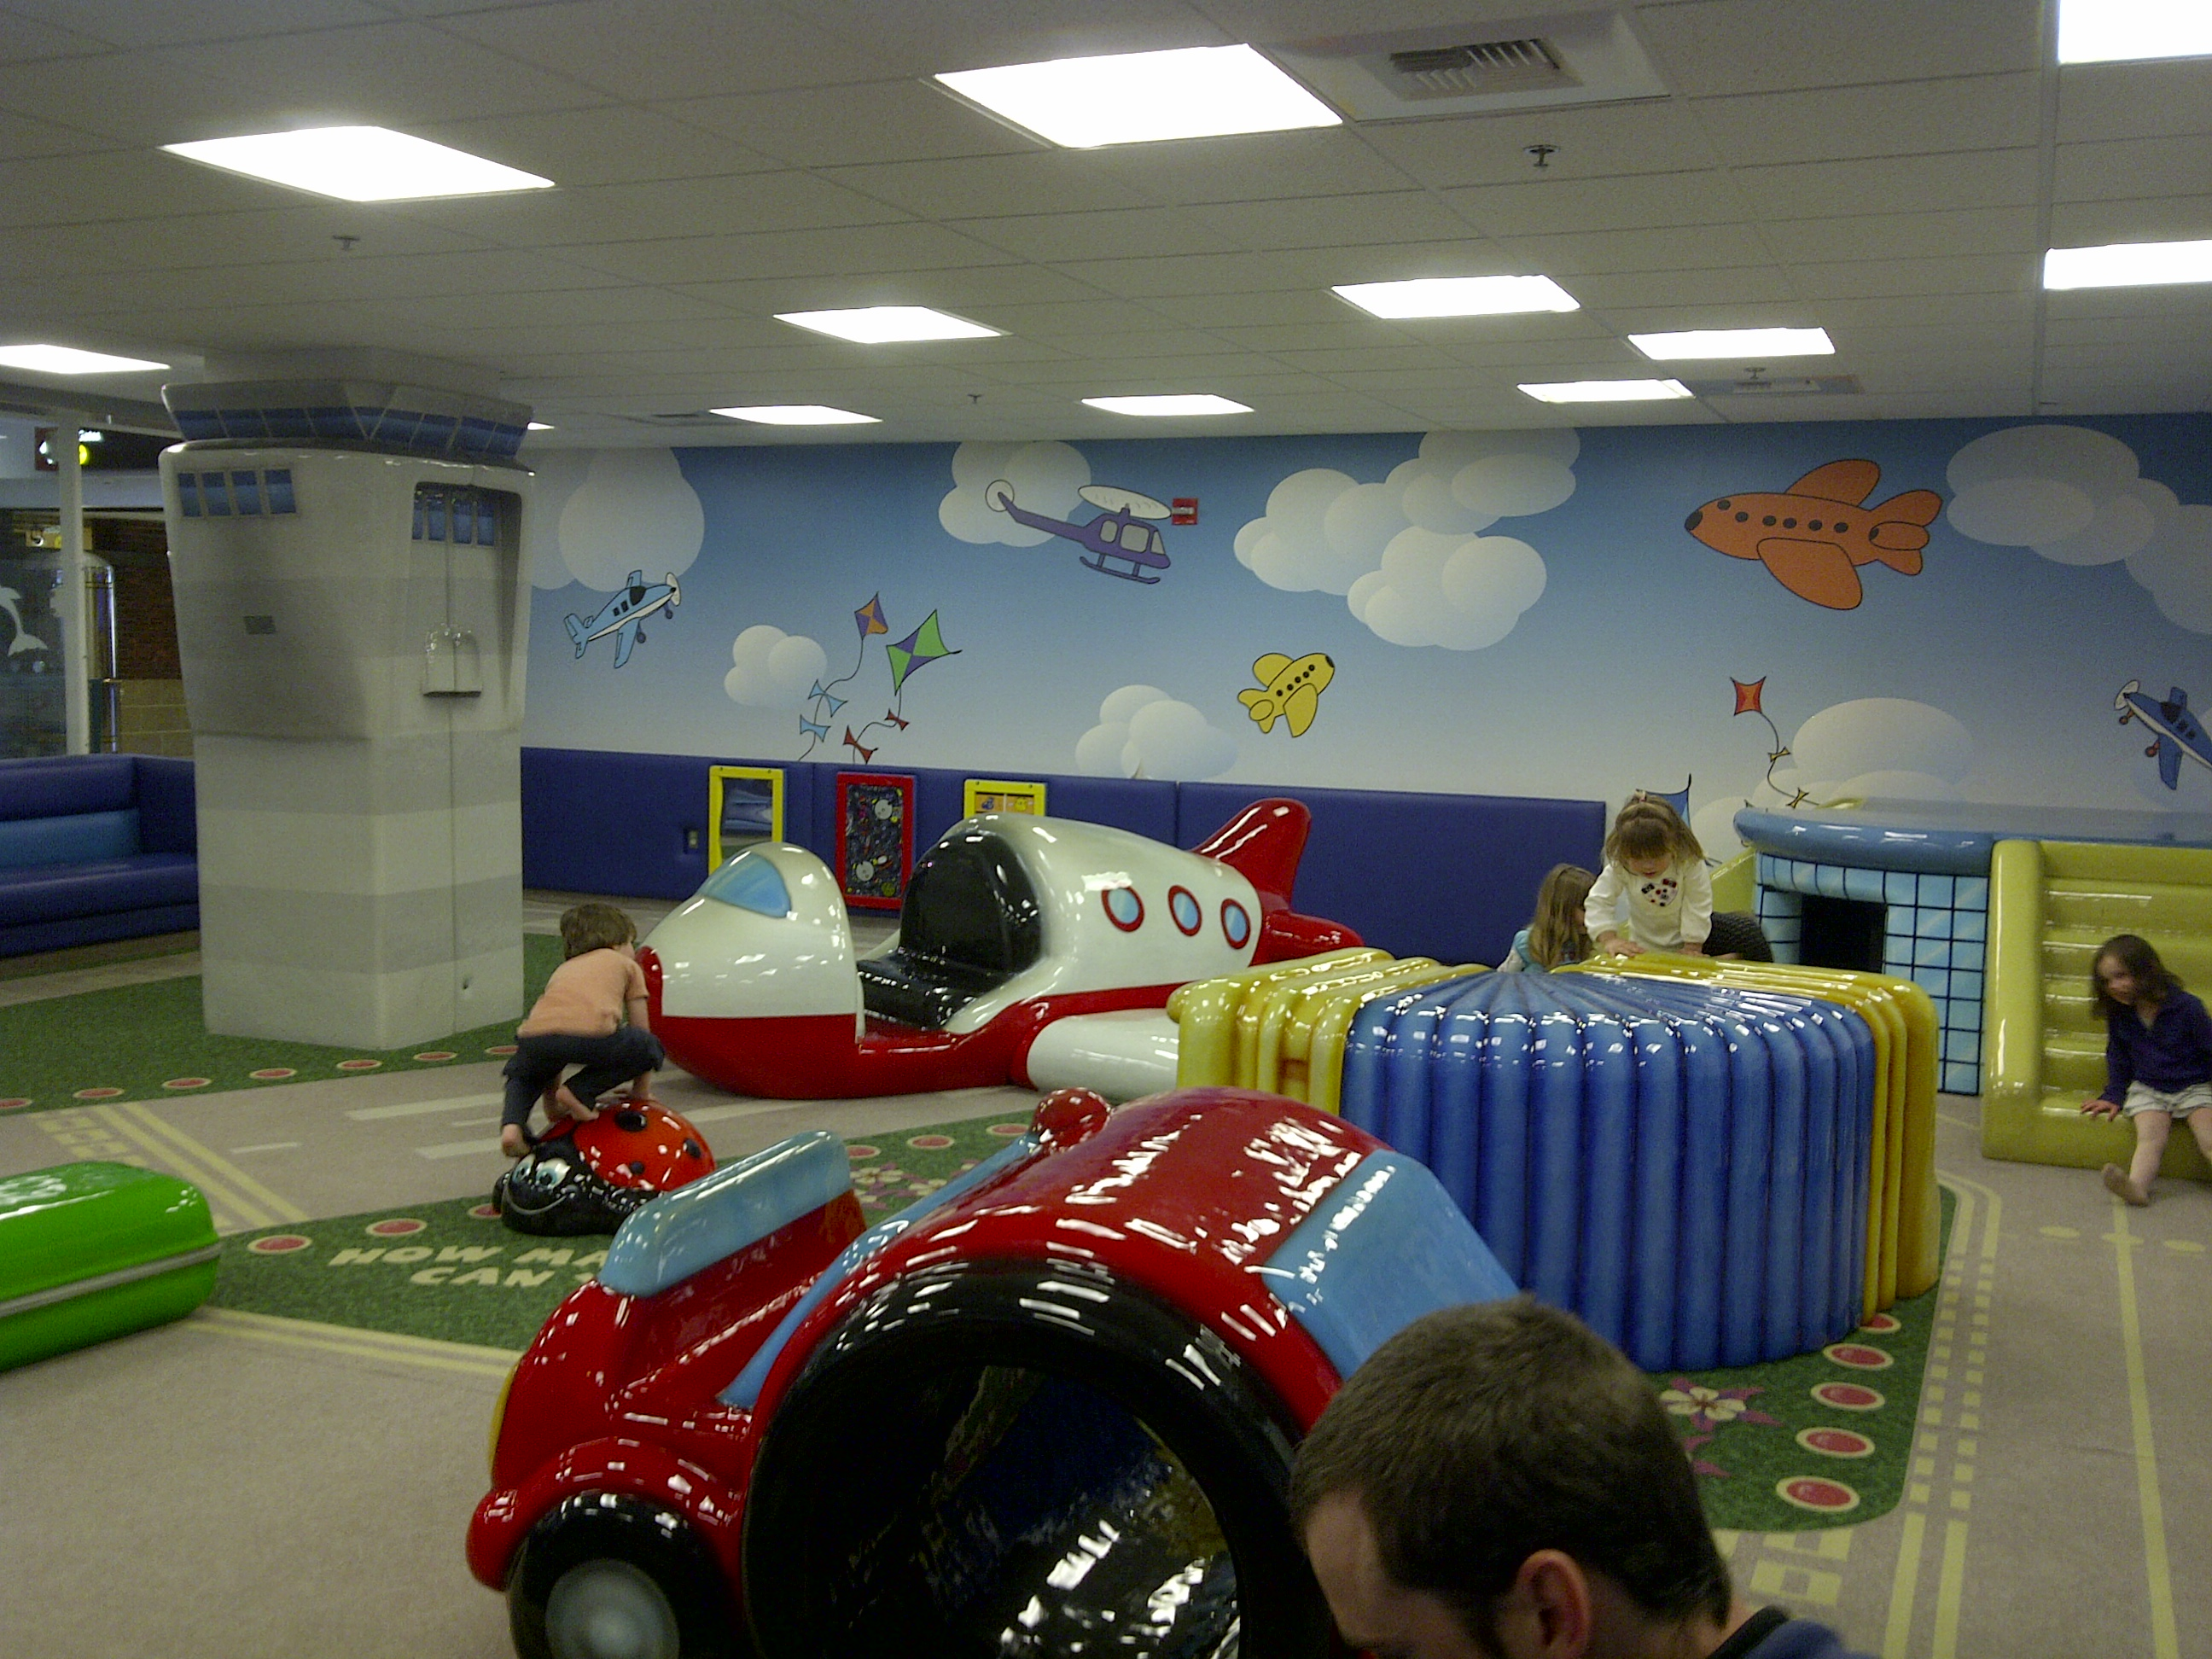 An Ode to the Sea-Tac Airport Children's Play Area